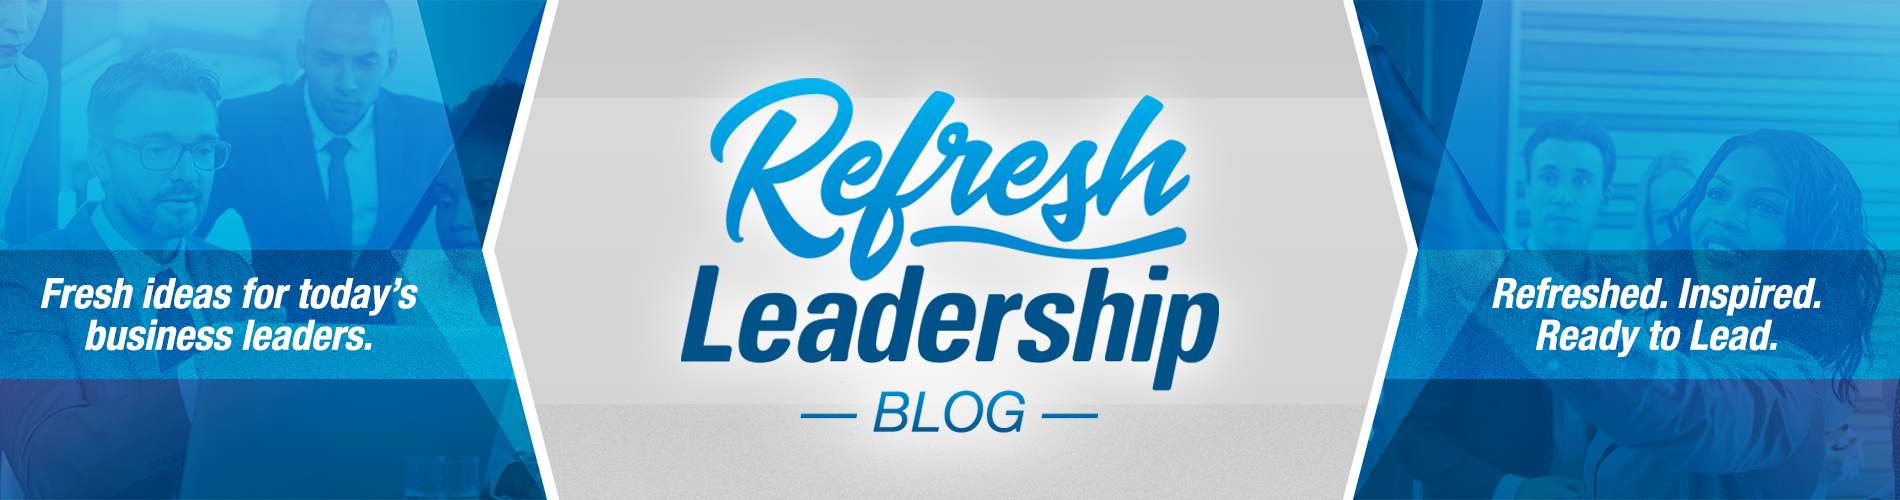 Refresh Leadership